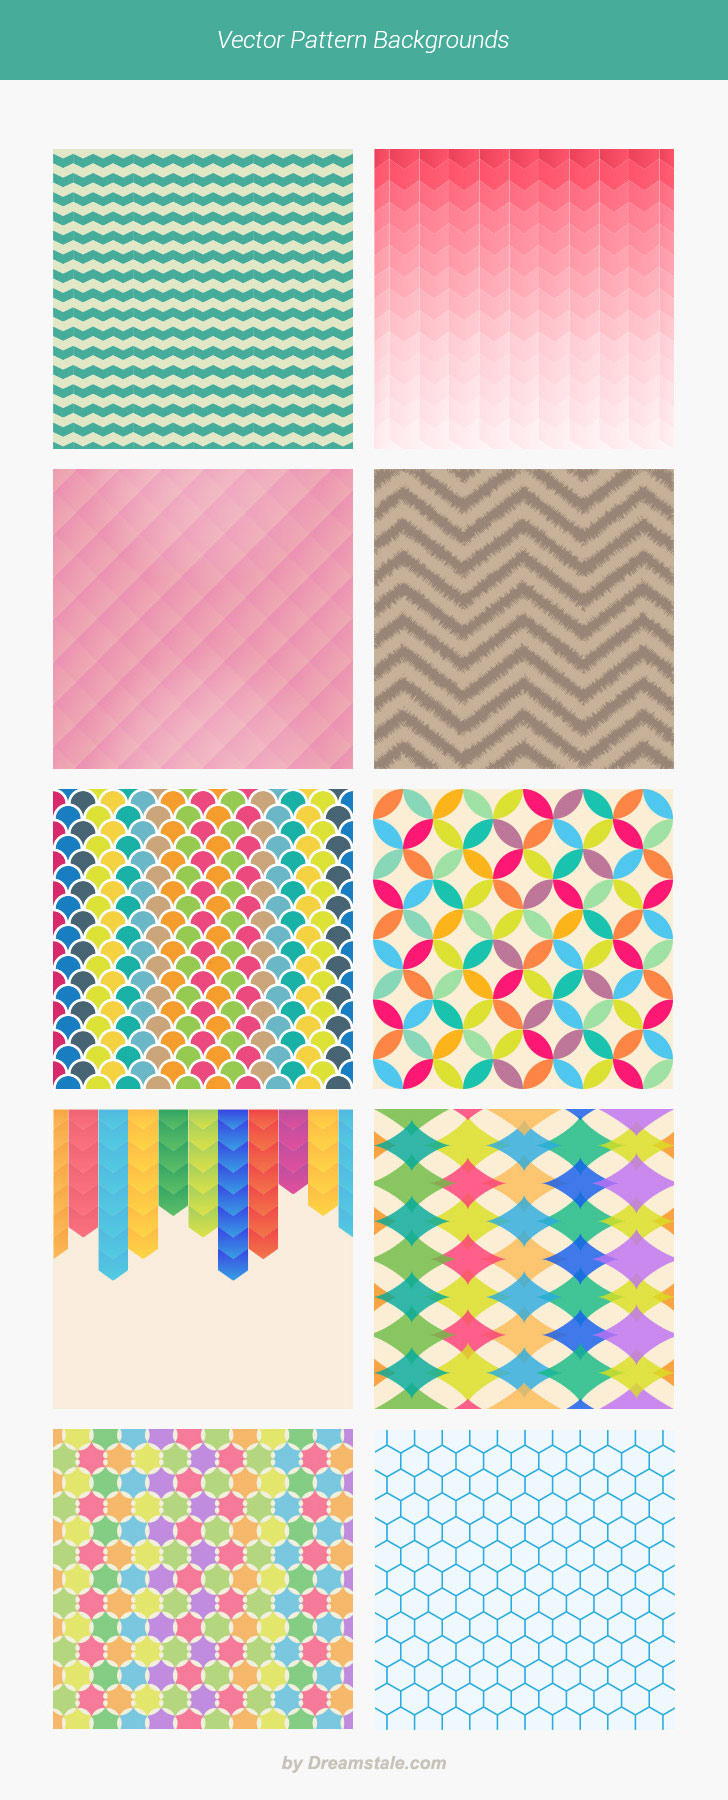 Free vector pattern backgrounds